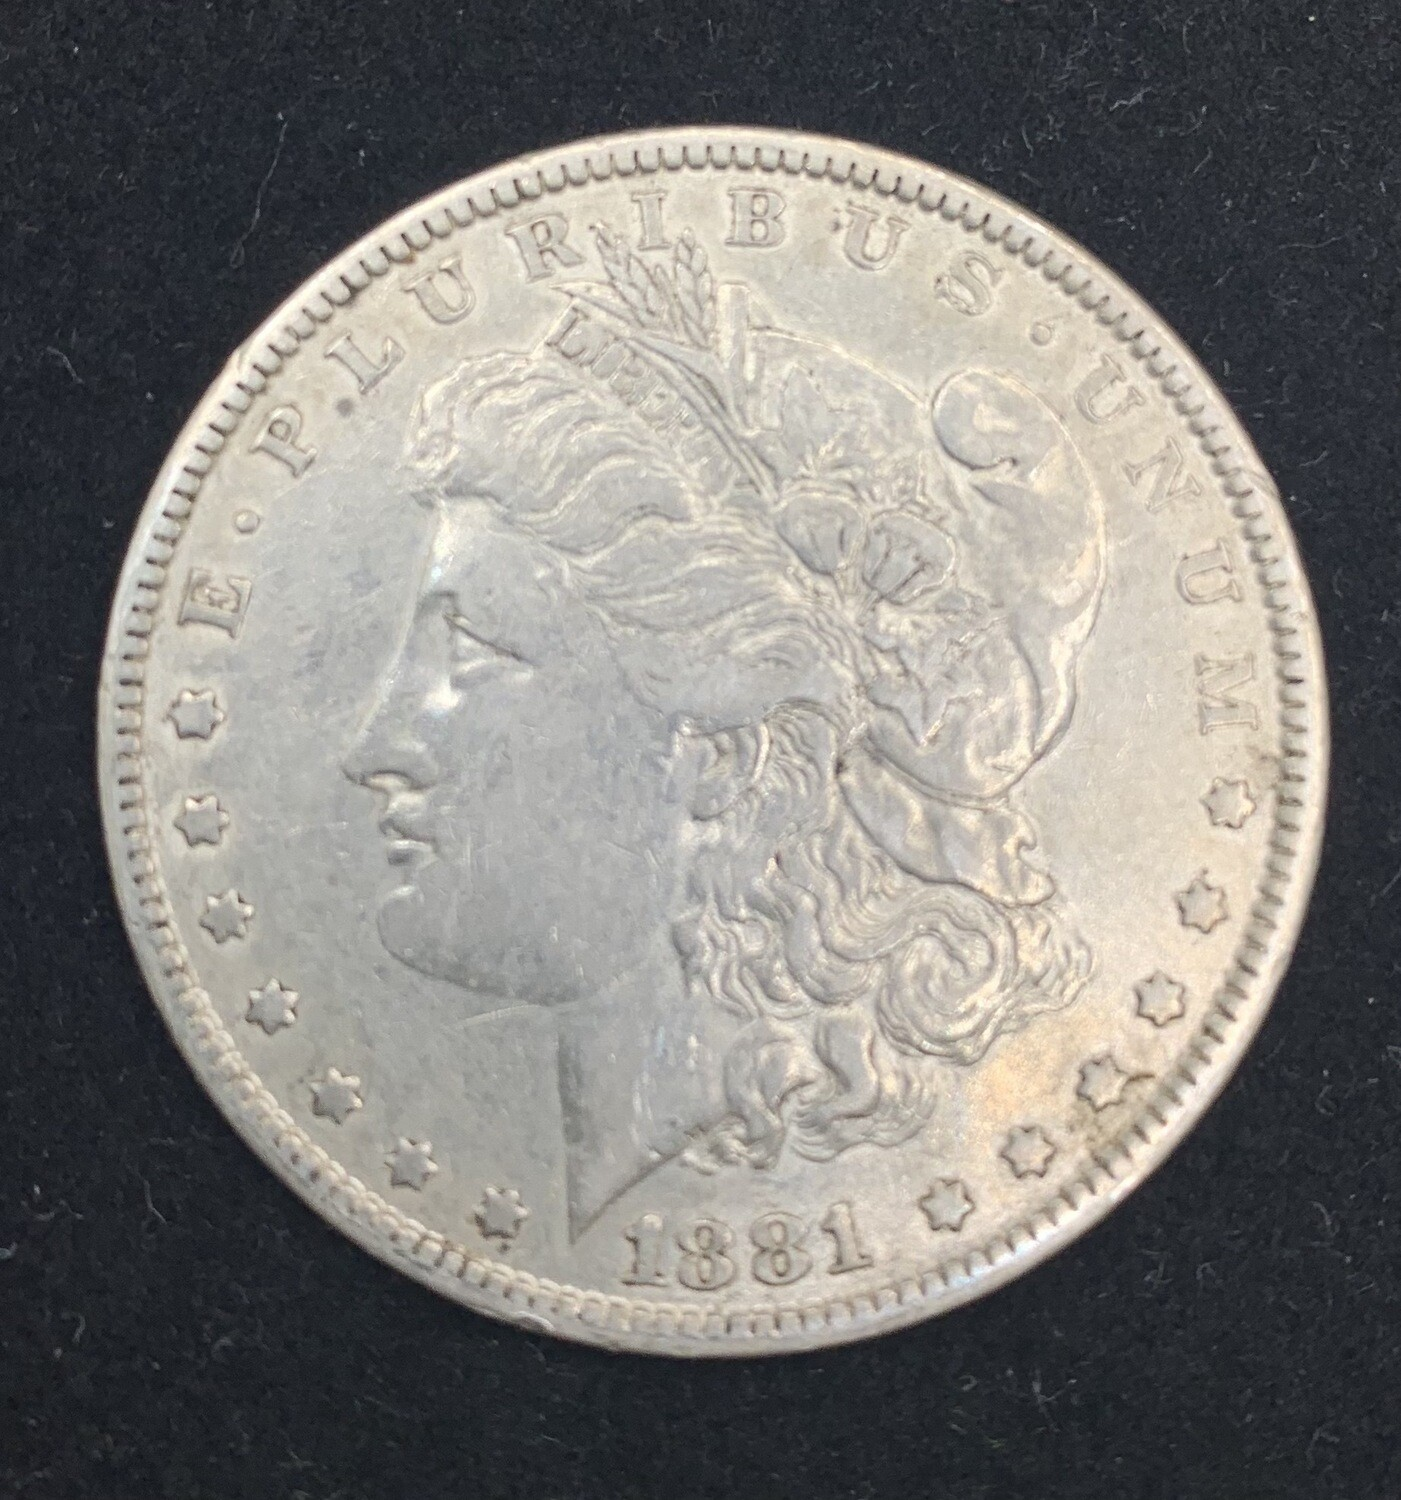 1881 Morgan Silver Dollar - Philadelphia Mint